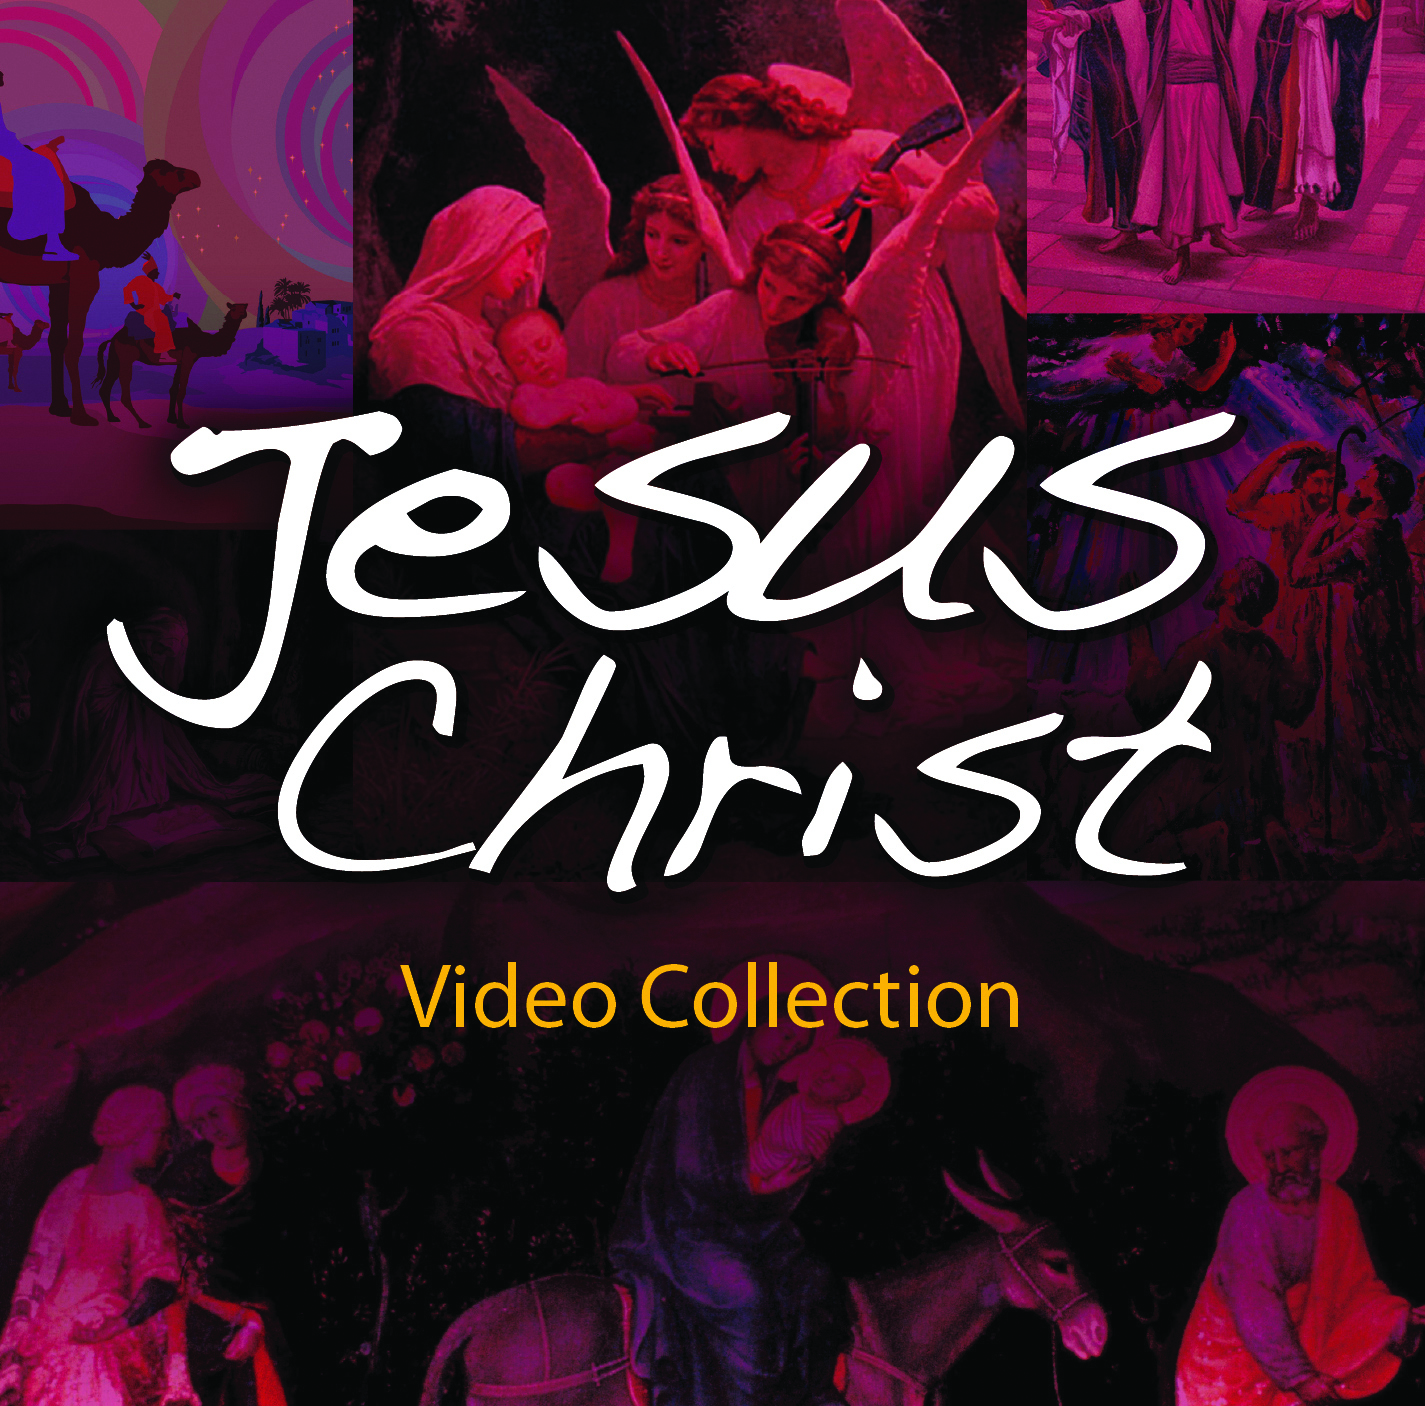 Jesus Christ (Video Collection)